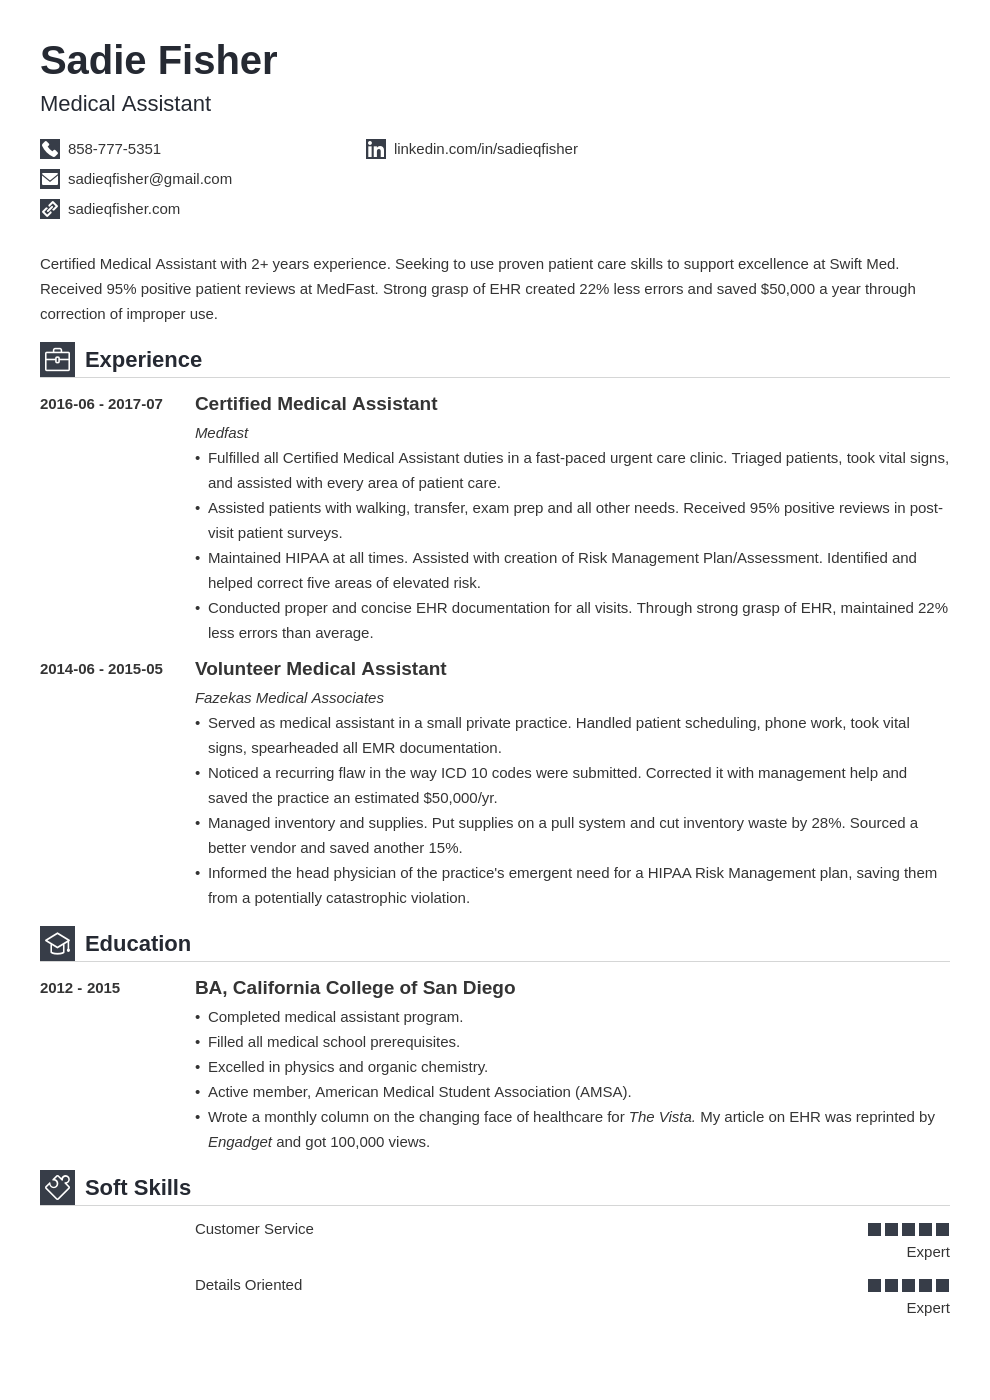 Medical Assistant Resume Template in 2020 Medical